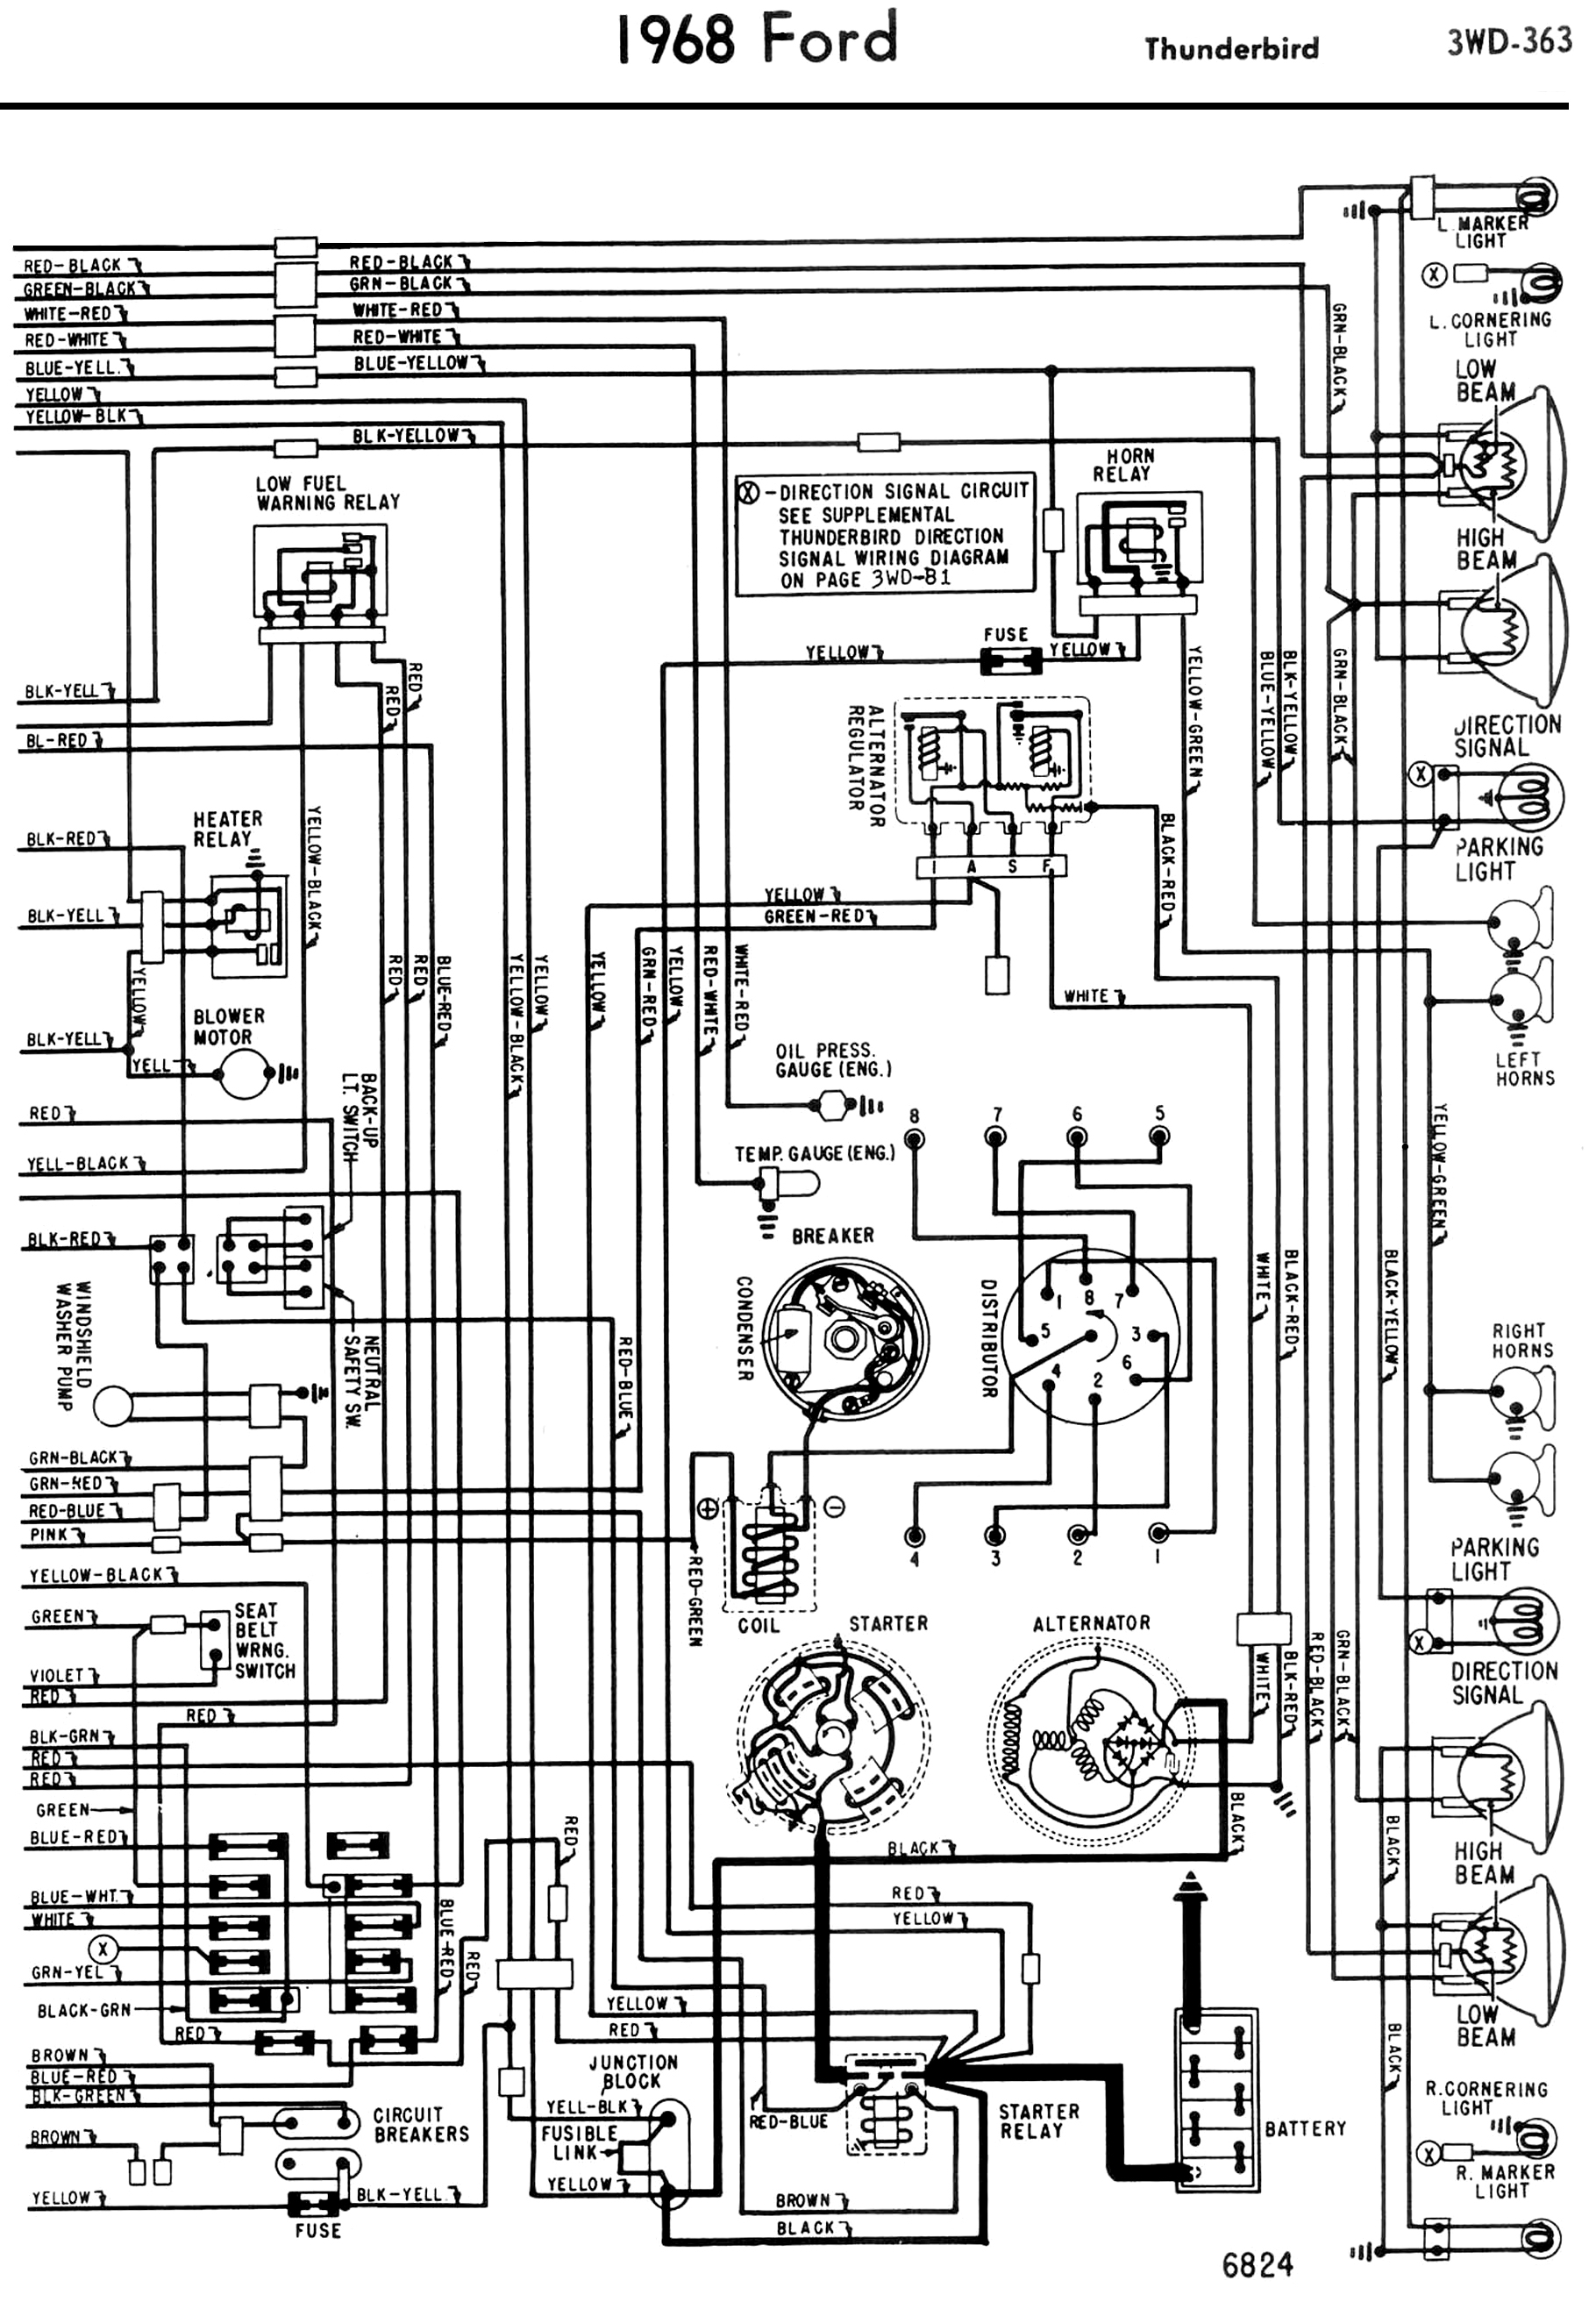 hight resolution of 95 ford thunderbird wiring diagram wiring diagram sort 95 ford thunderbird engine diagram